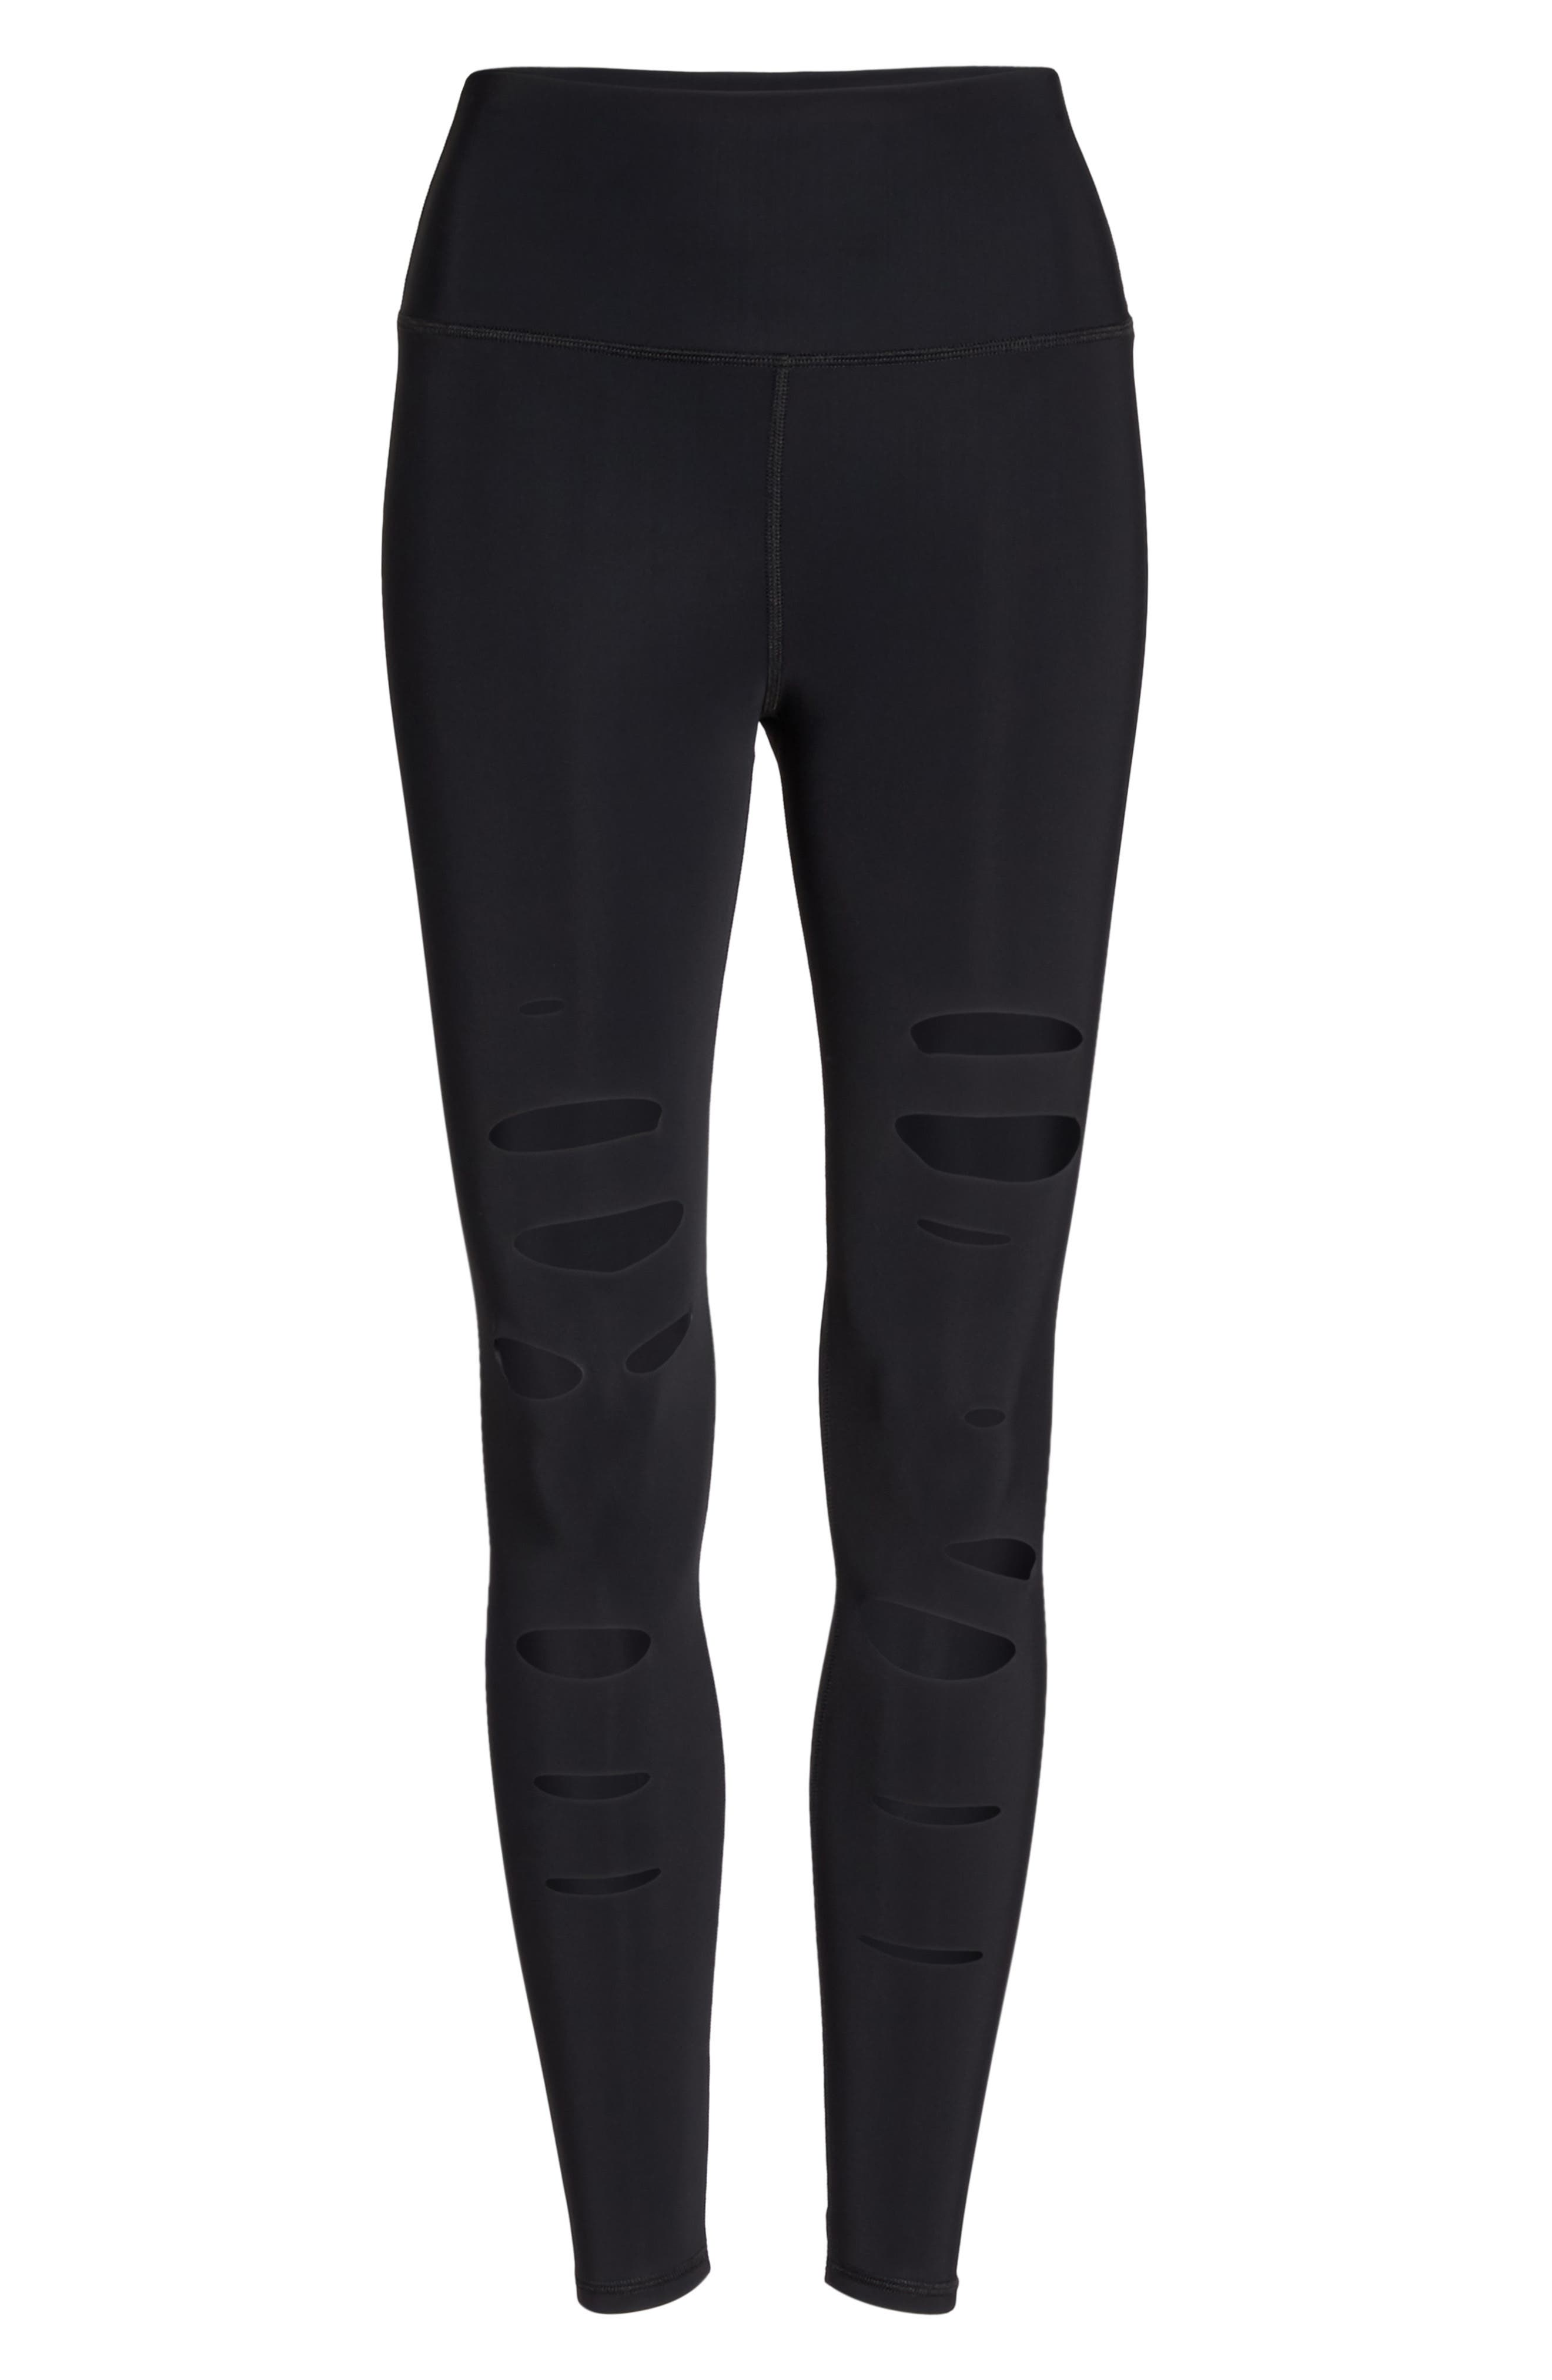 Ripped Warrior Midi Leggings,                             Alternate thumbnail 7, color,                             001